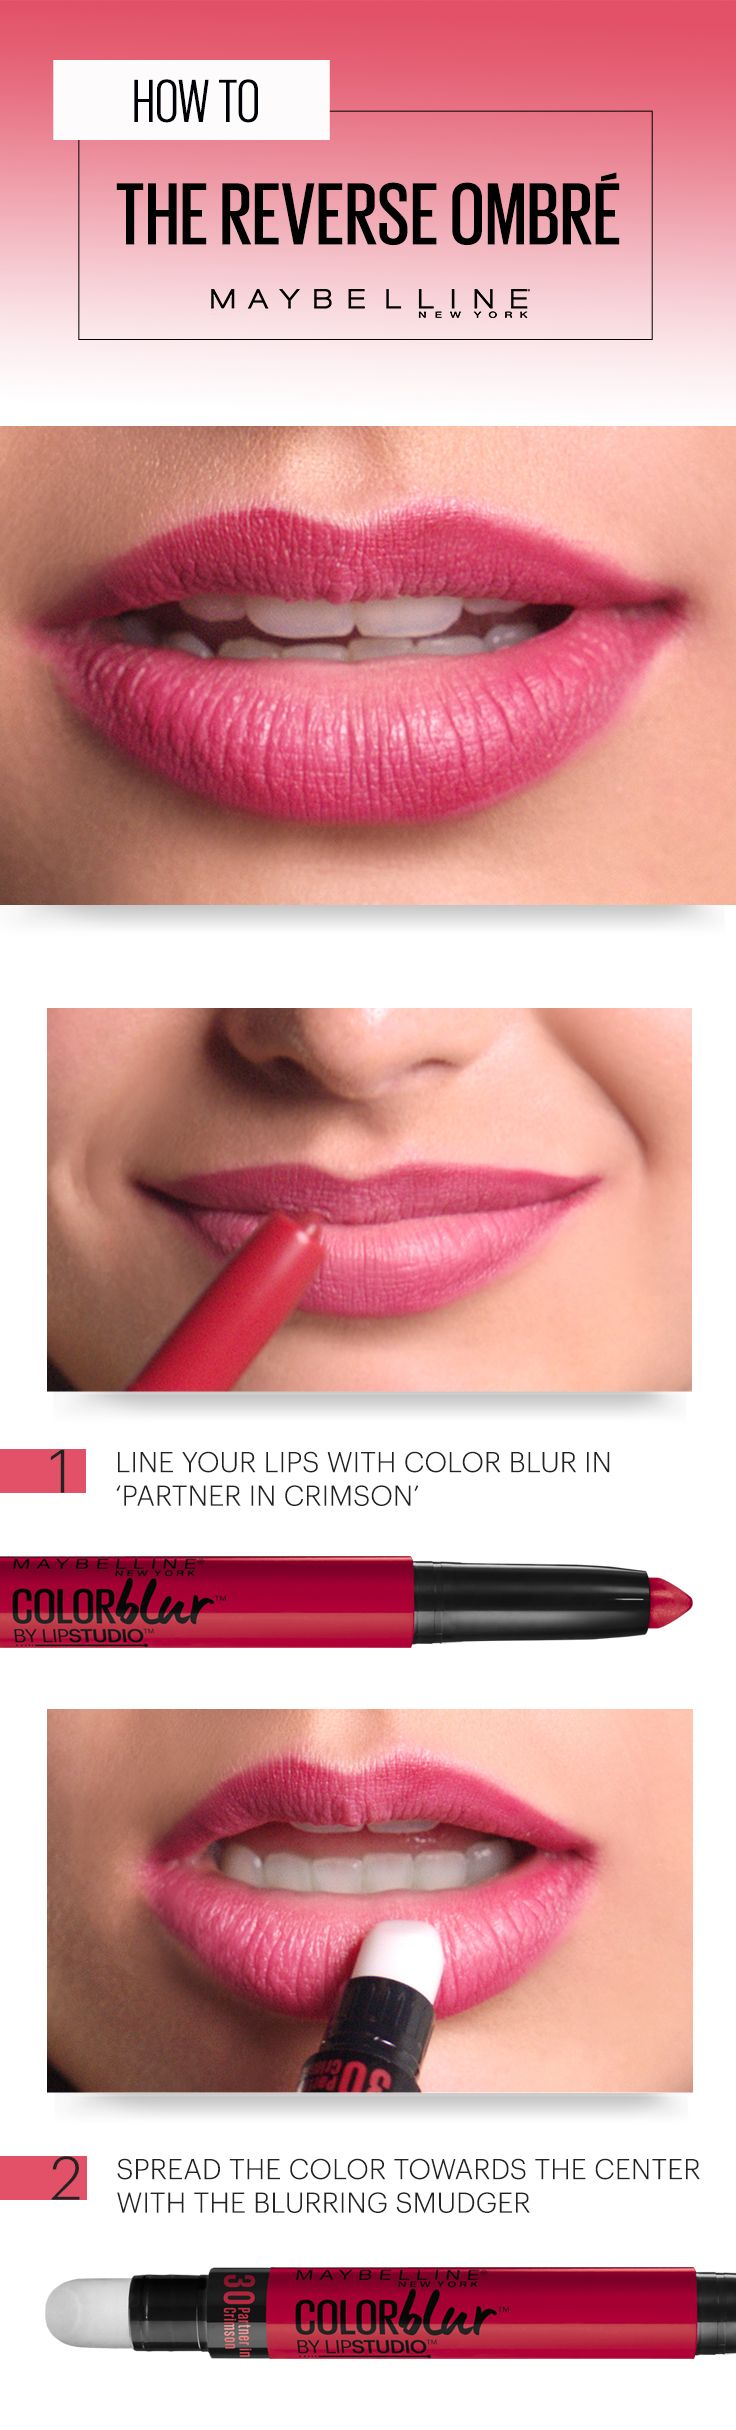 To get this reverse ombré lip look with Maybelline Color Blur in 'Partner in Crimson', line your lips with the matte pencil end and gently blur color inwards with the smudger end. Done. Now get out there and be the fearless babe we know you are. More good news: You can shop this makeup product on Amazon right now!